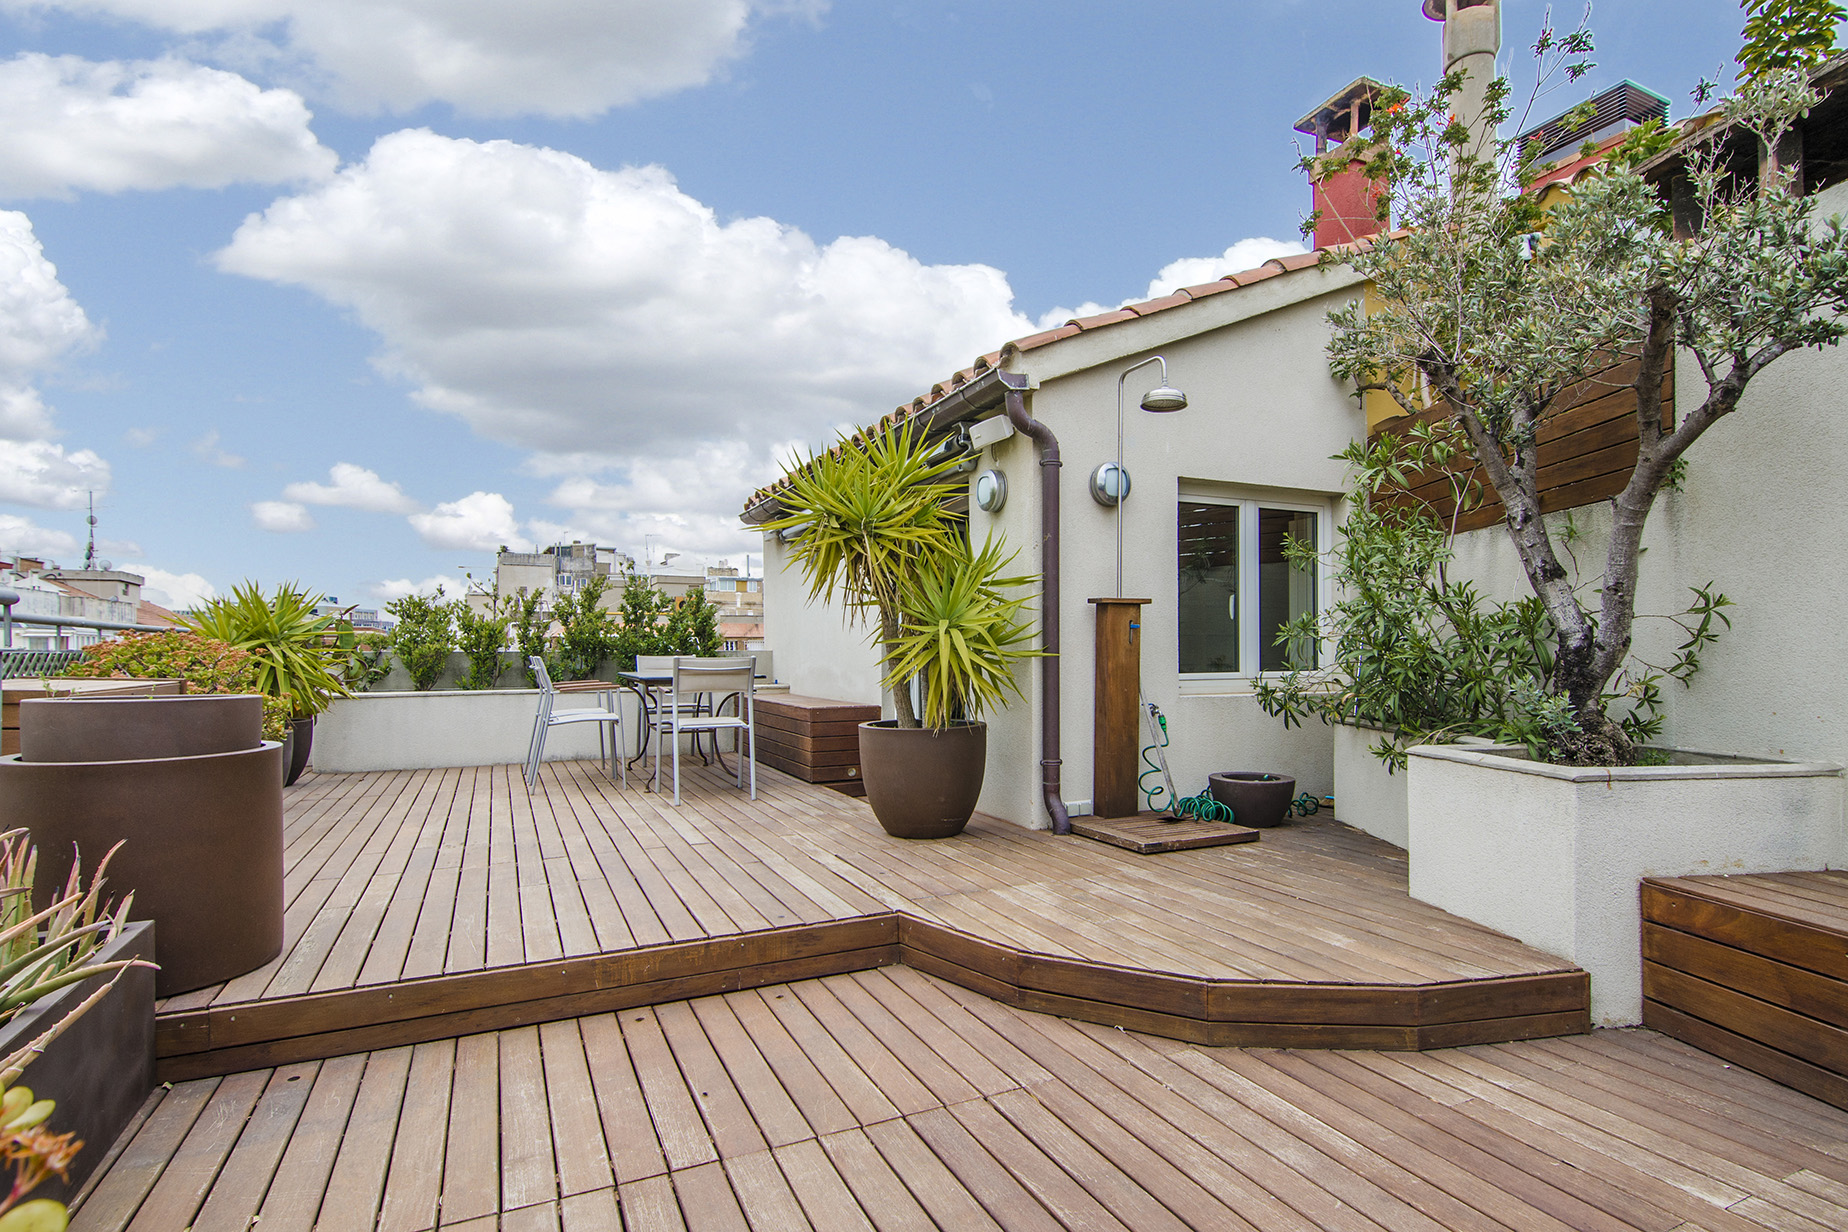 Property For Sale at Modern penthouse-duplex with nice terrace in Sant Gervasi, Barcelona